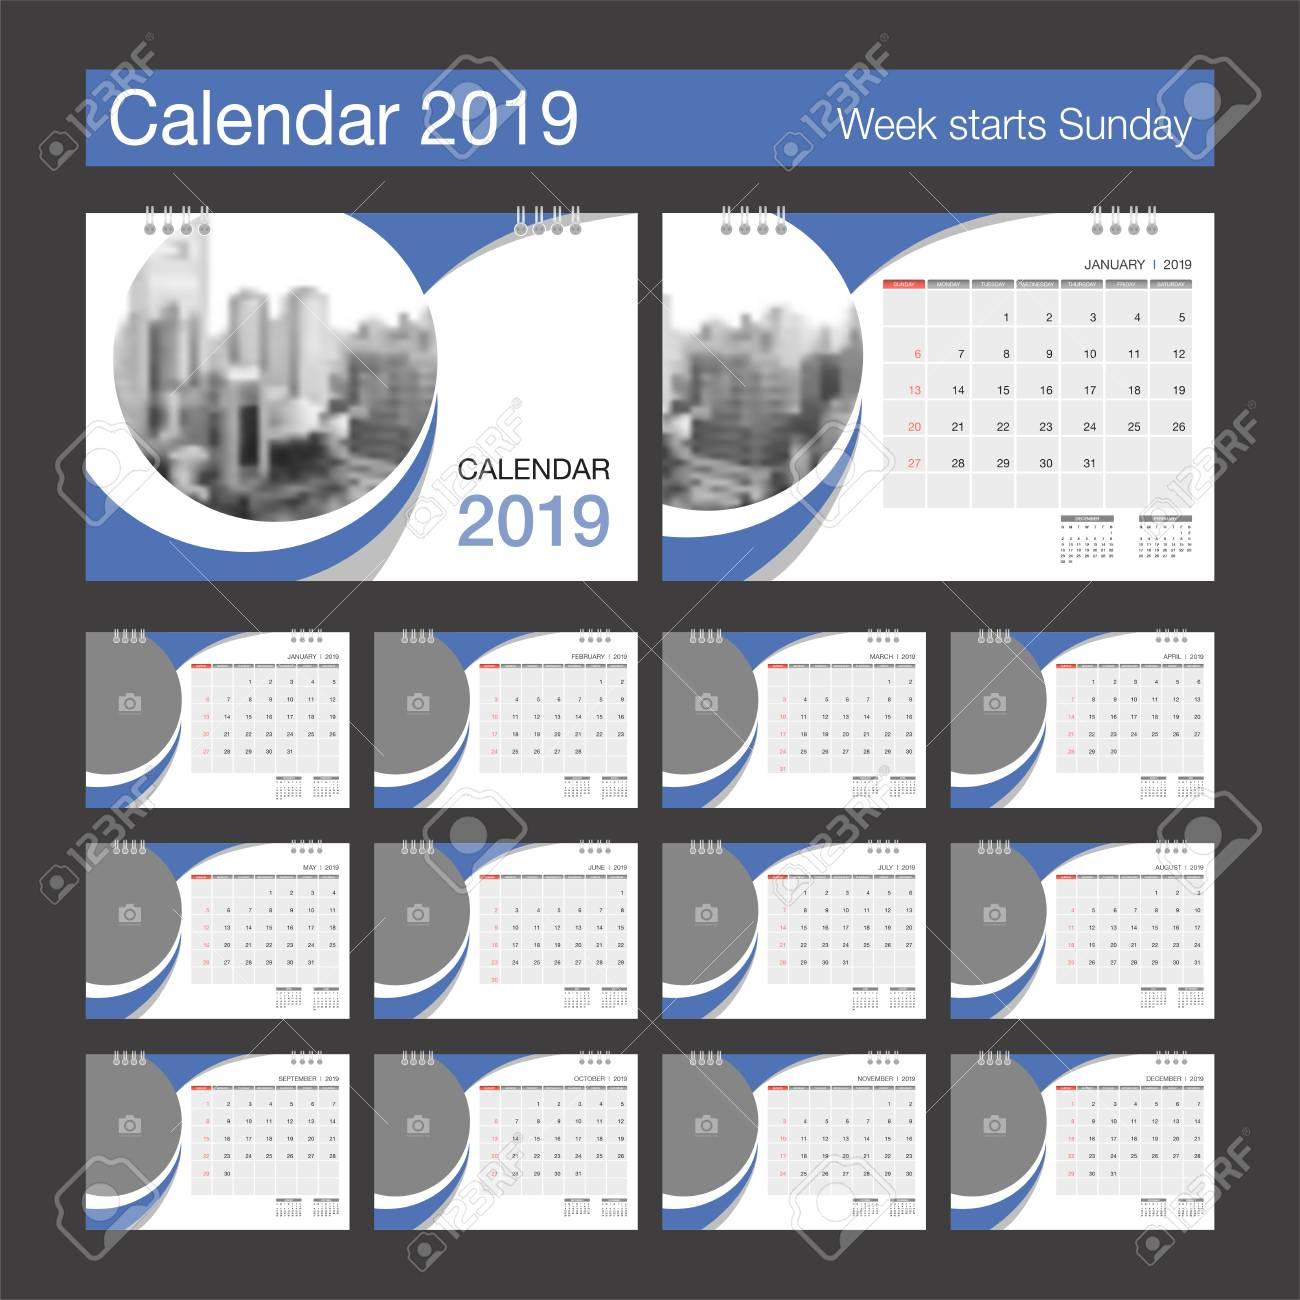 2019 Calendar Desk Calendar Modern Design Template With Place